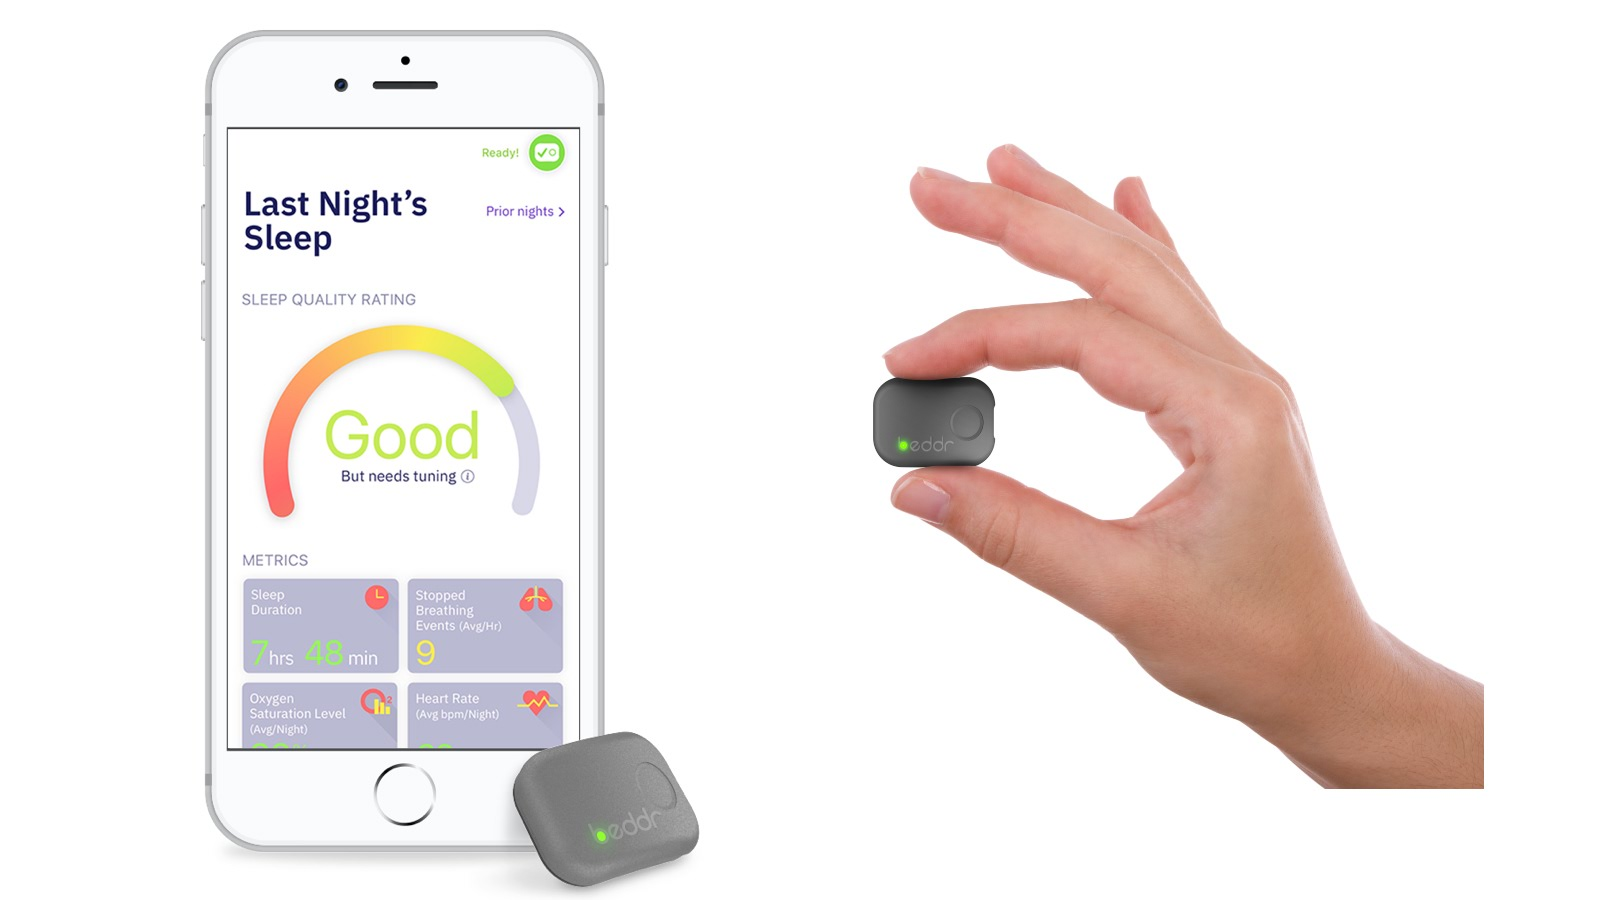 beddr s sleeptuner is a powerful standalone alternative to apple watch sleep tracking